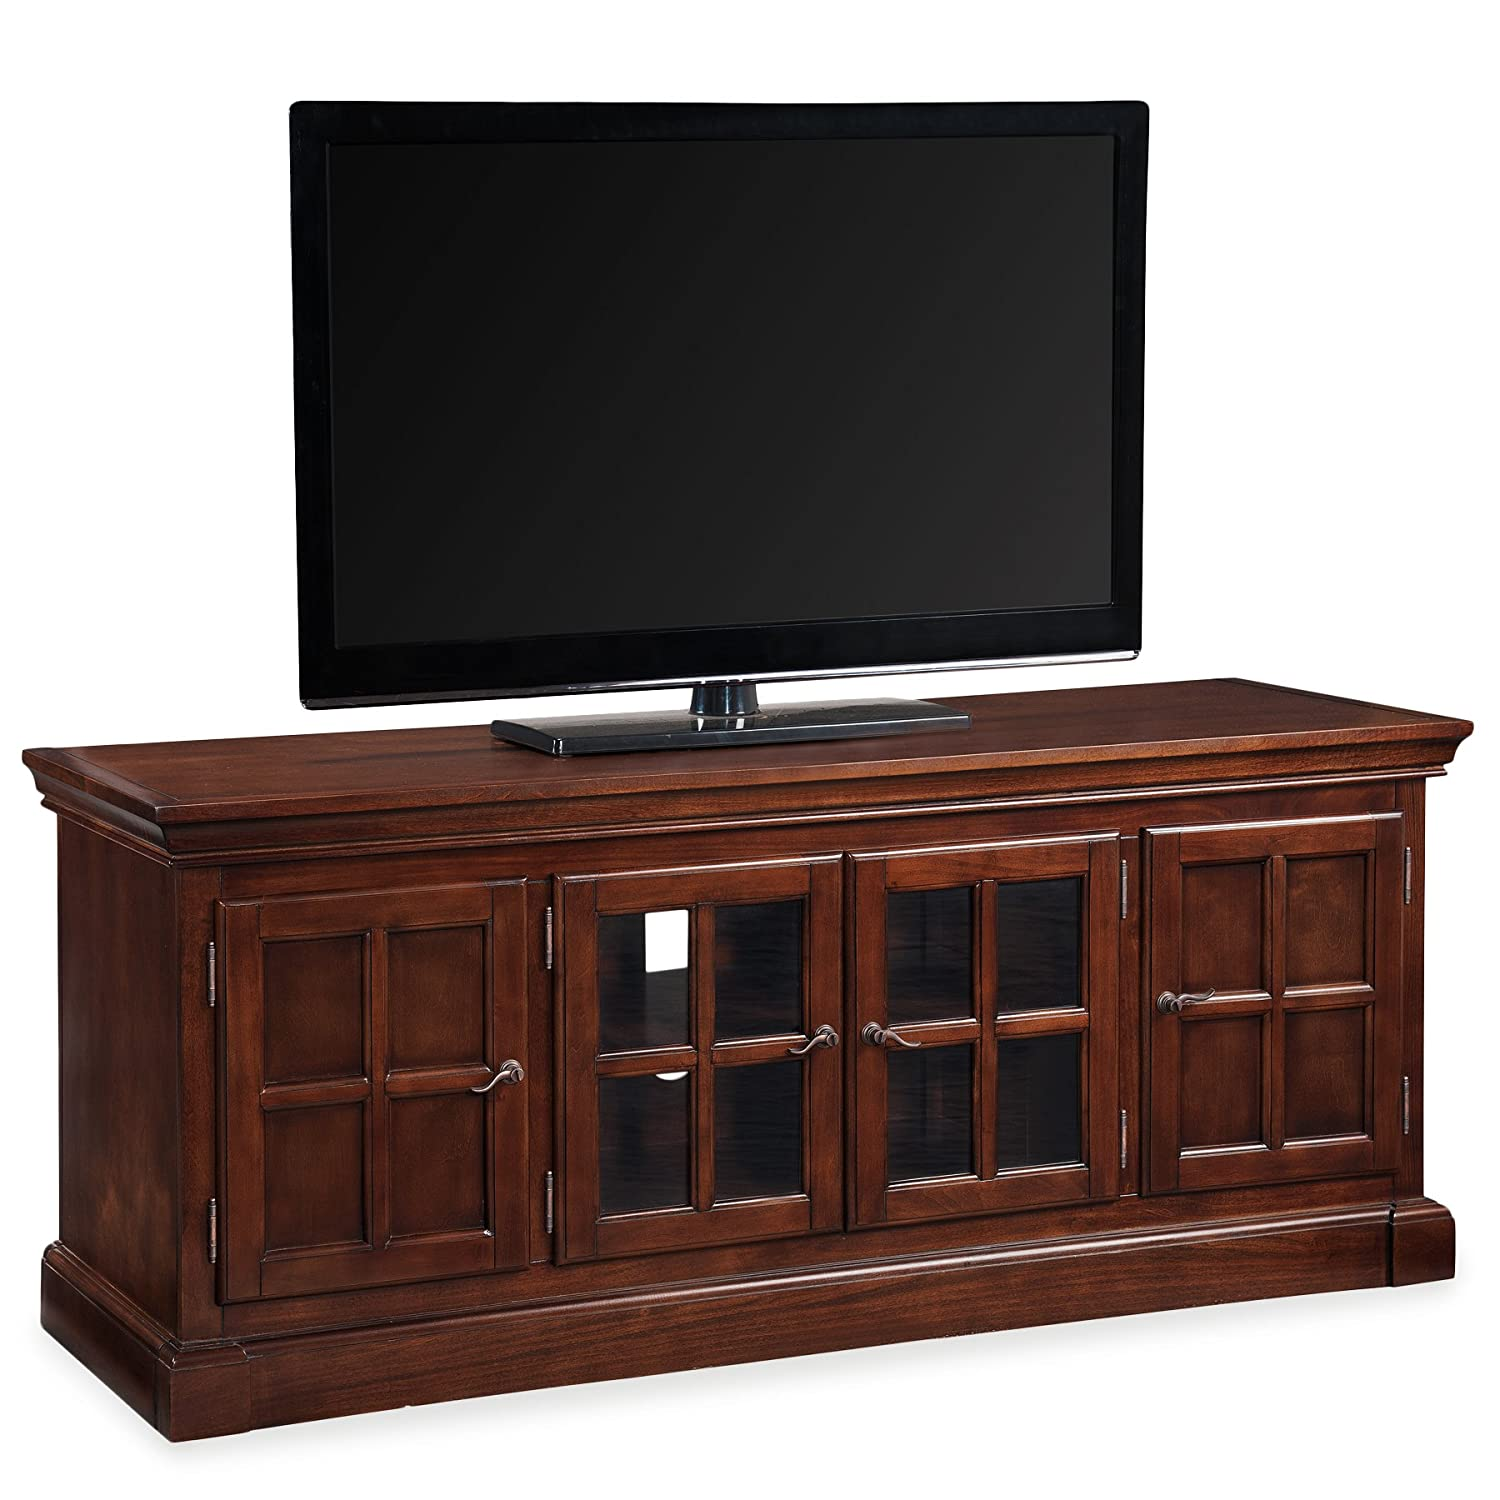 Amazon Com Leick 81560 Bella Maison 60 Tv Stand With Lever  # Image Table Tele Coin Maison